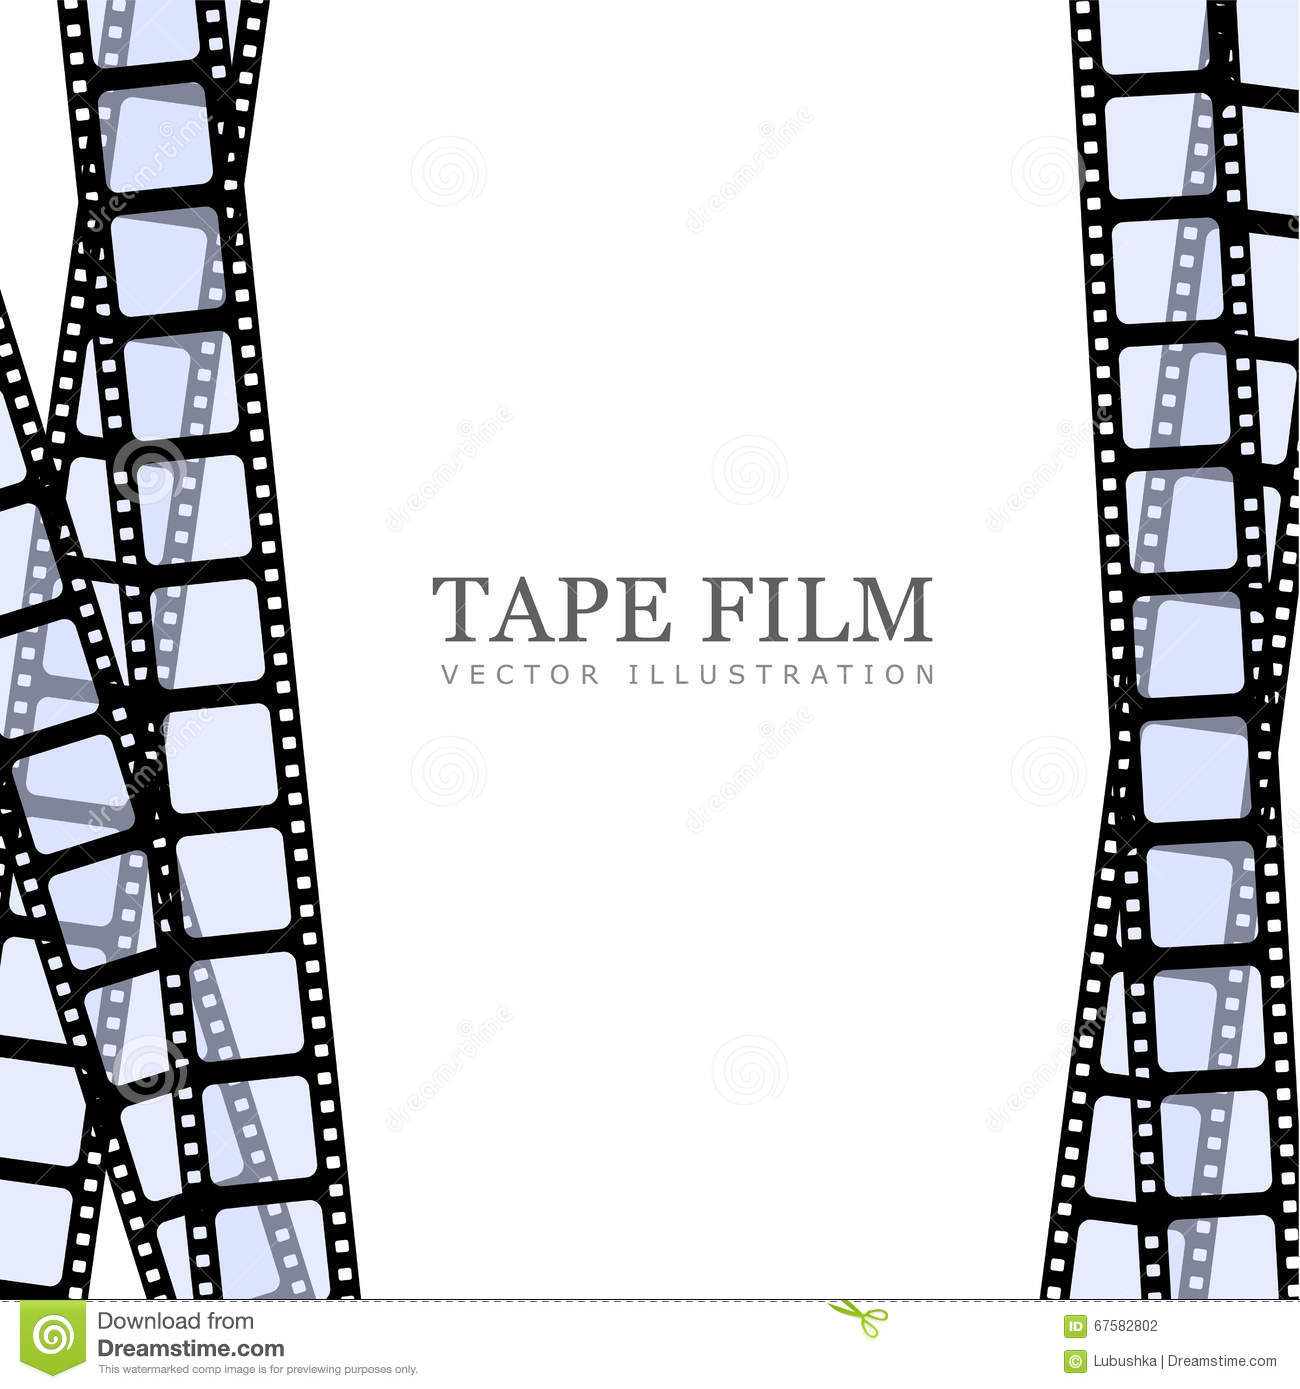 Template Film Roll Stock Vector - Image: 67582802